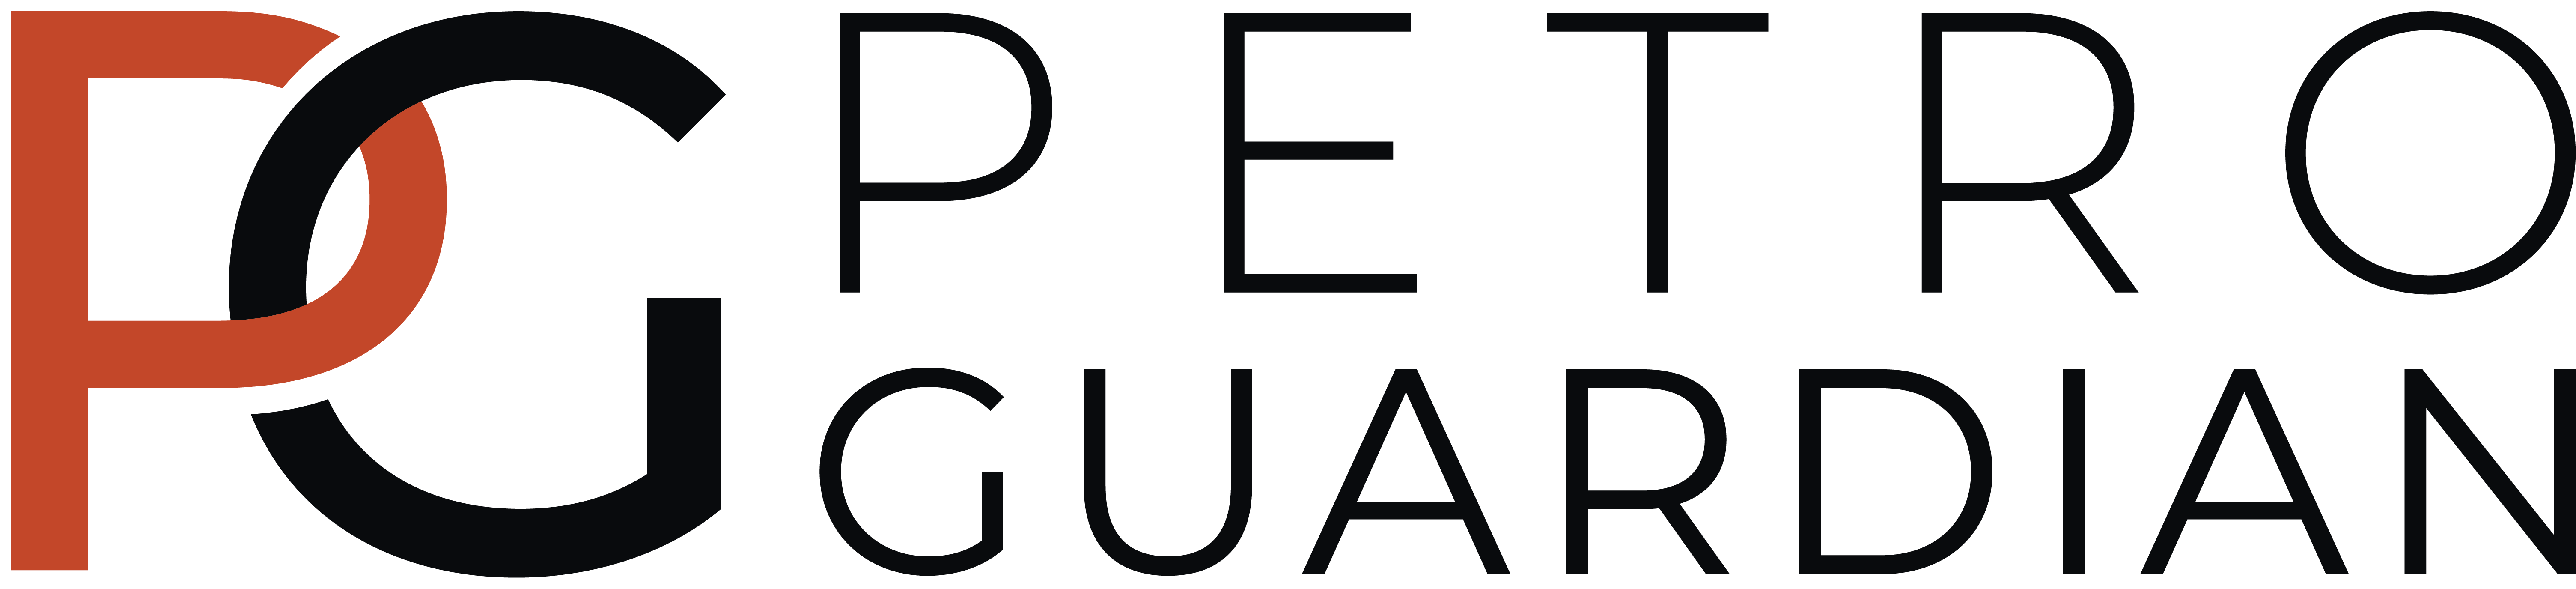 Logo_Petro_Guardian_Horizontal_Color